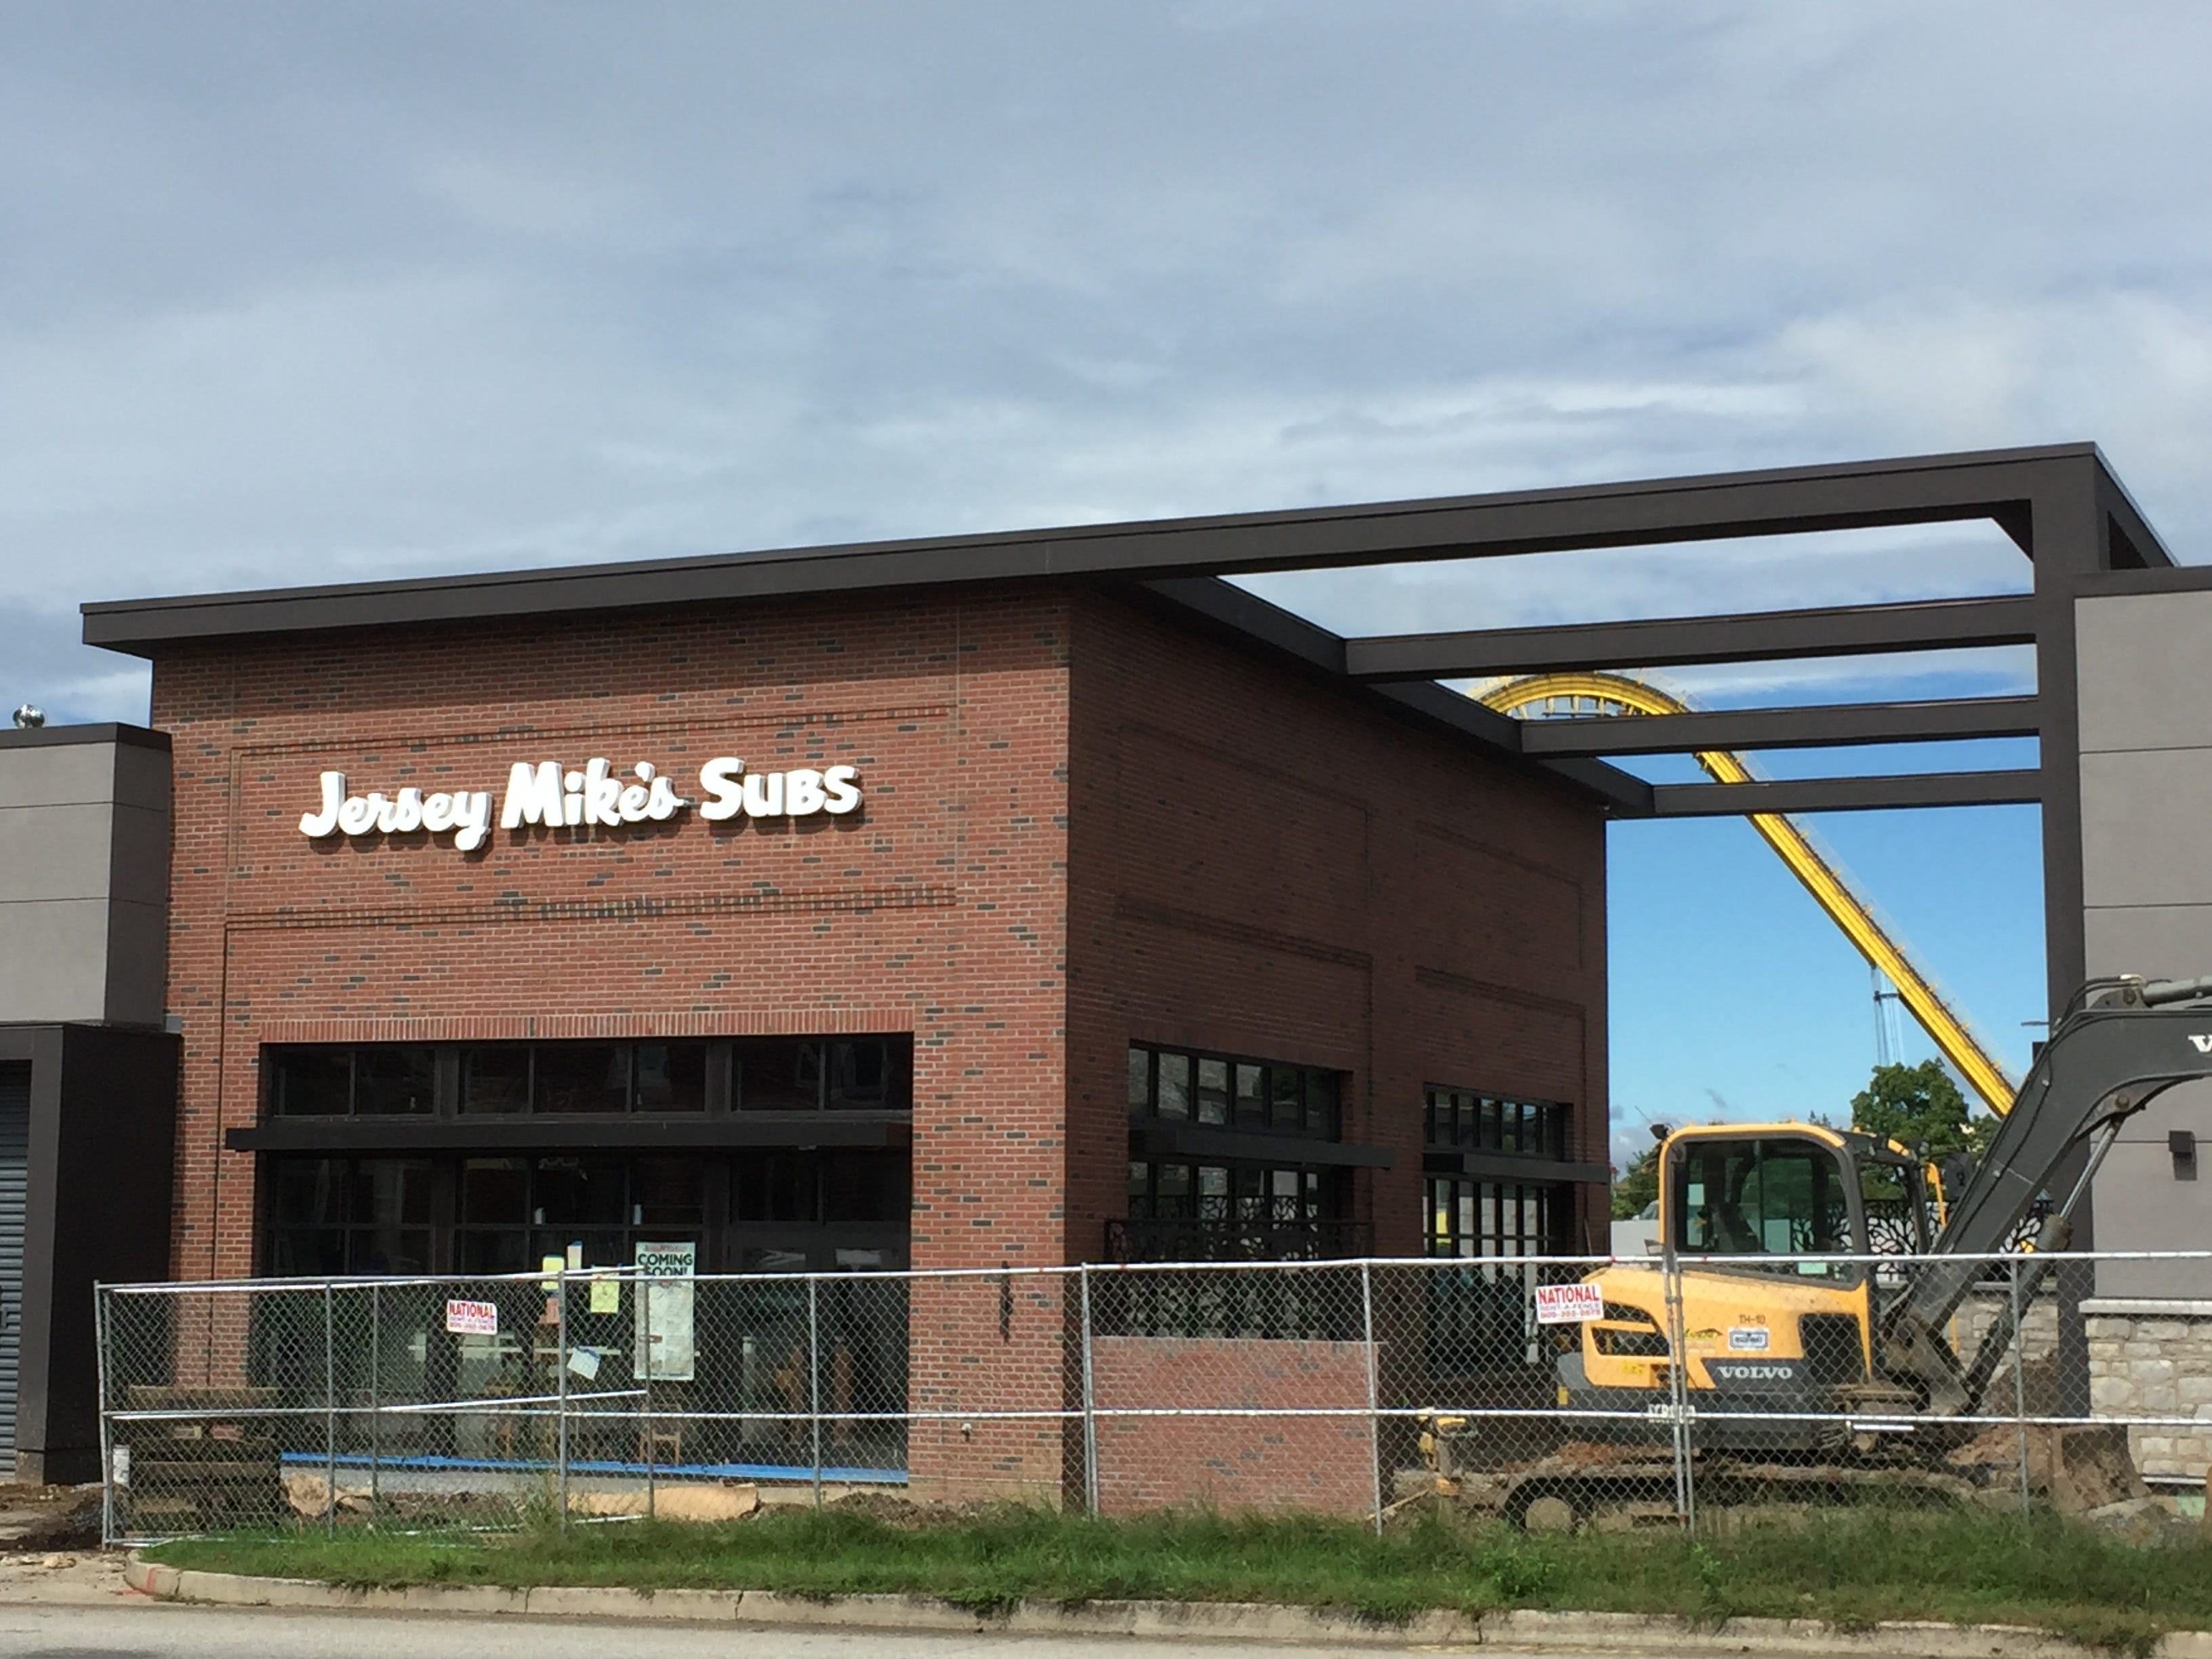 There is still some work to be done on the walks outside Jersey Mike's.